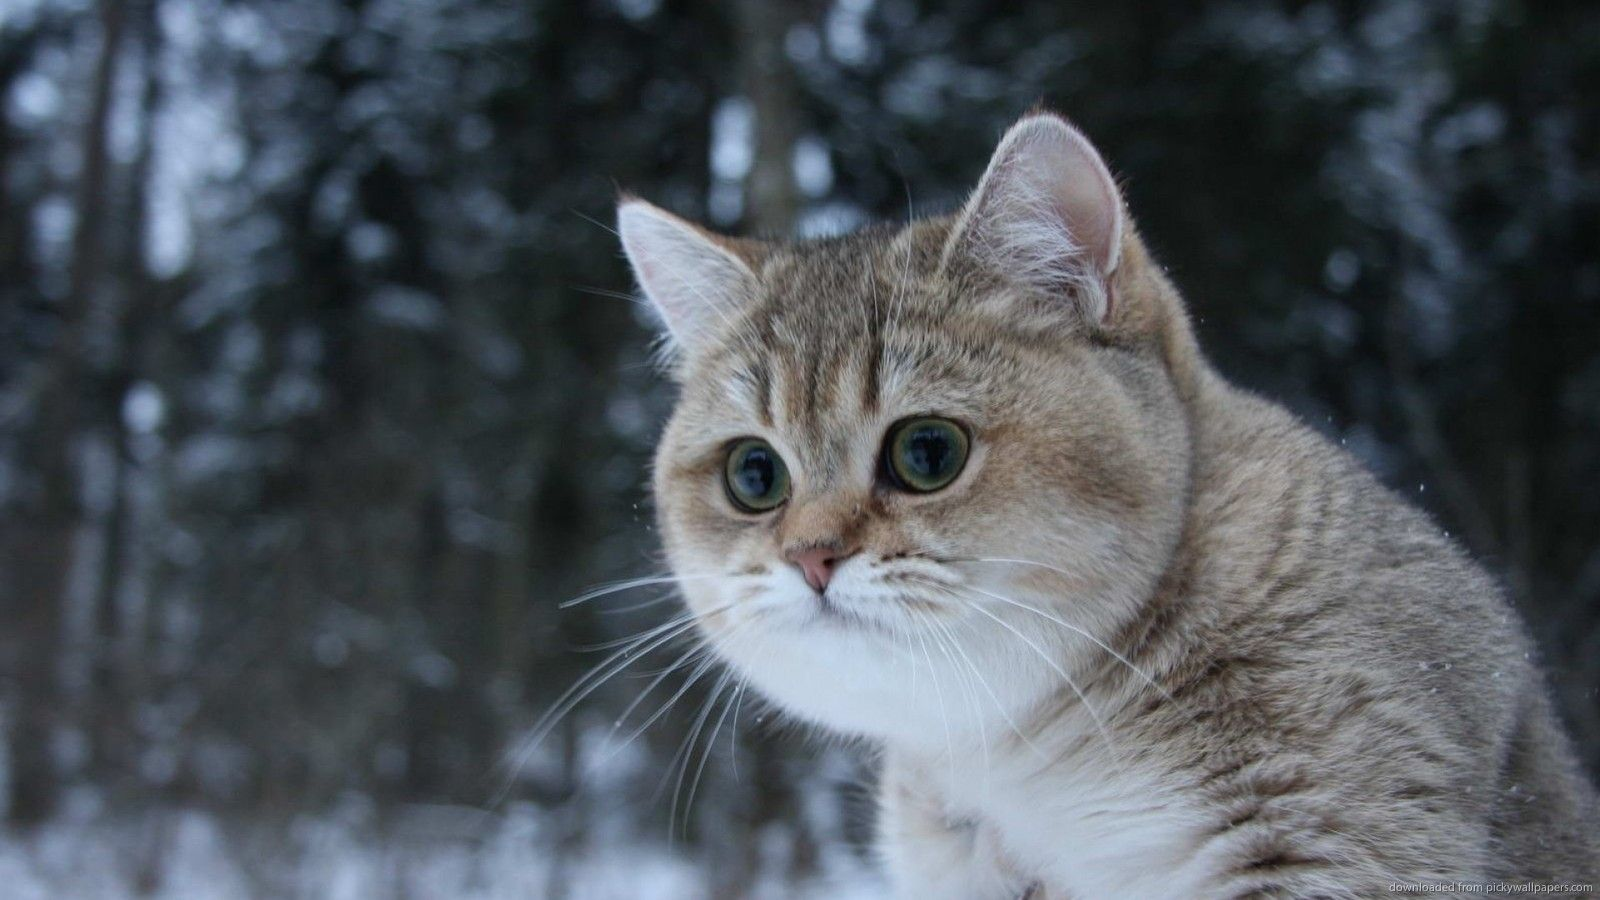 Awesome Cats That Cost a Fortune impressive